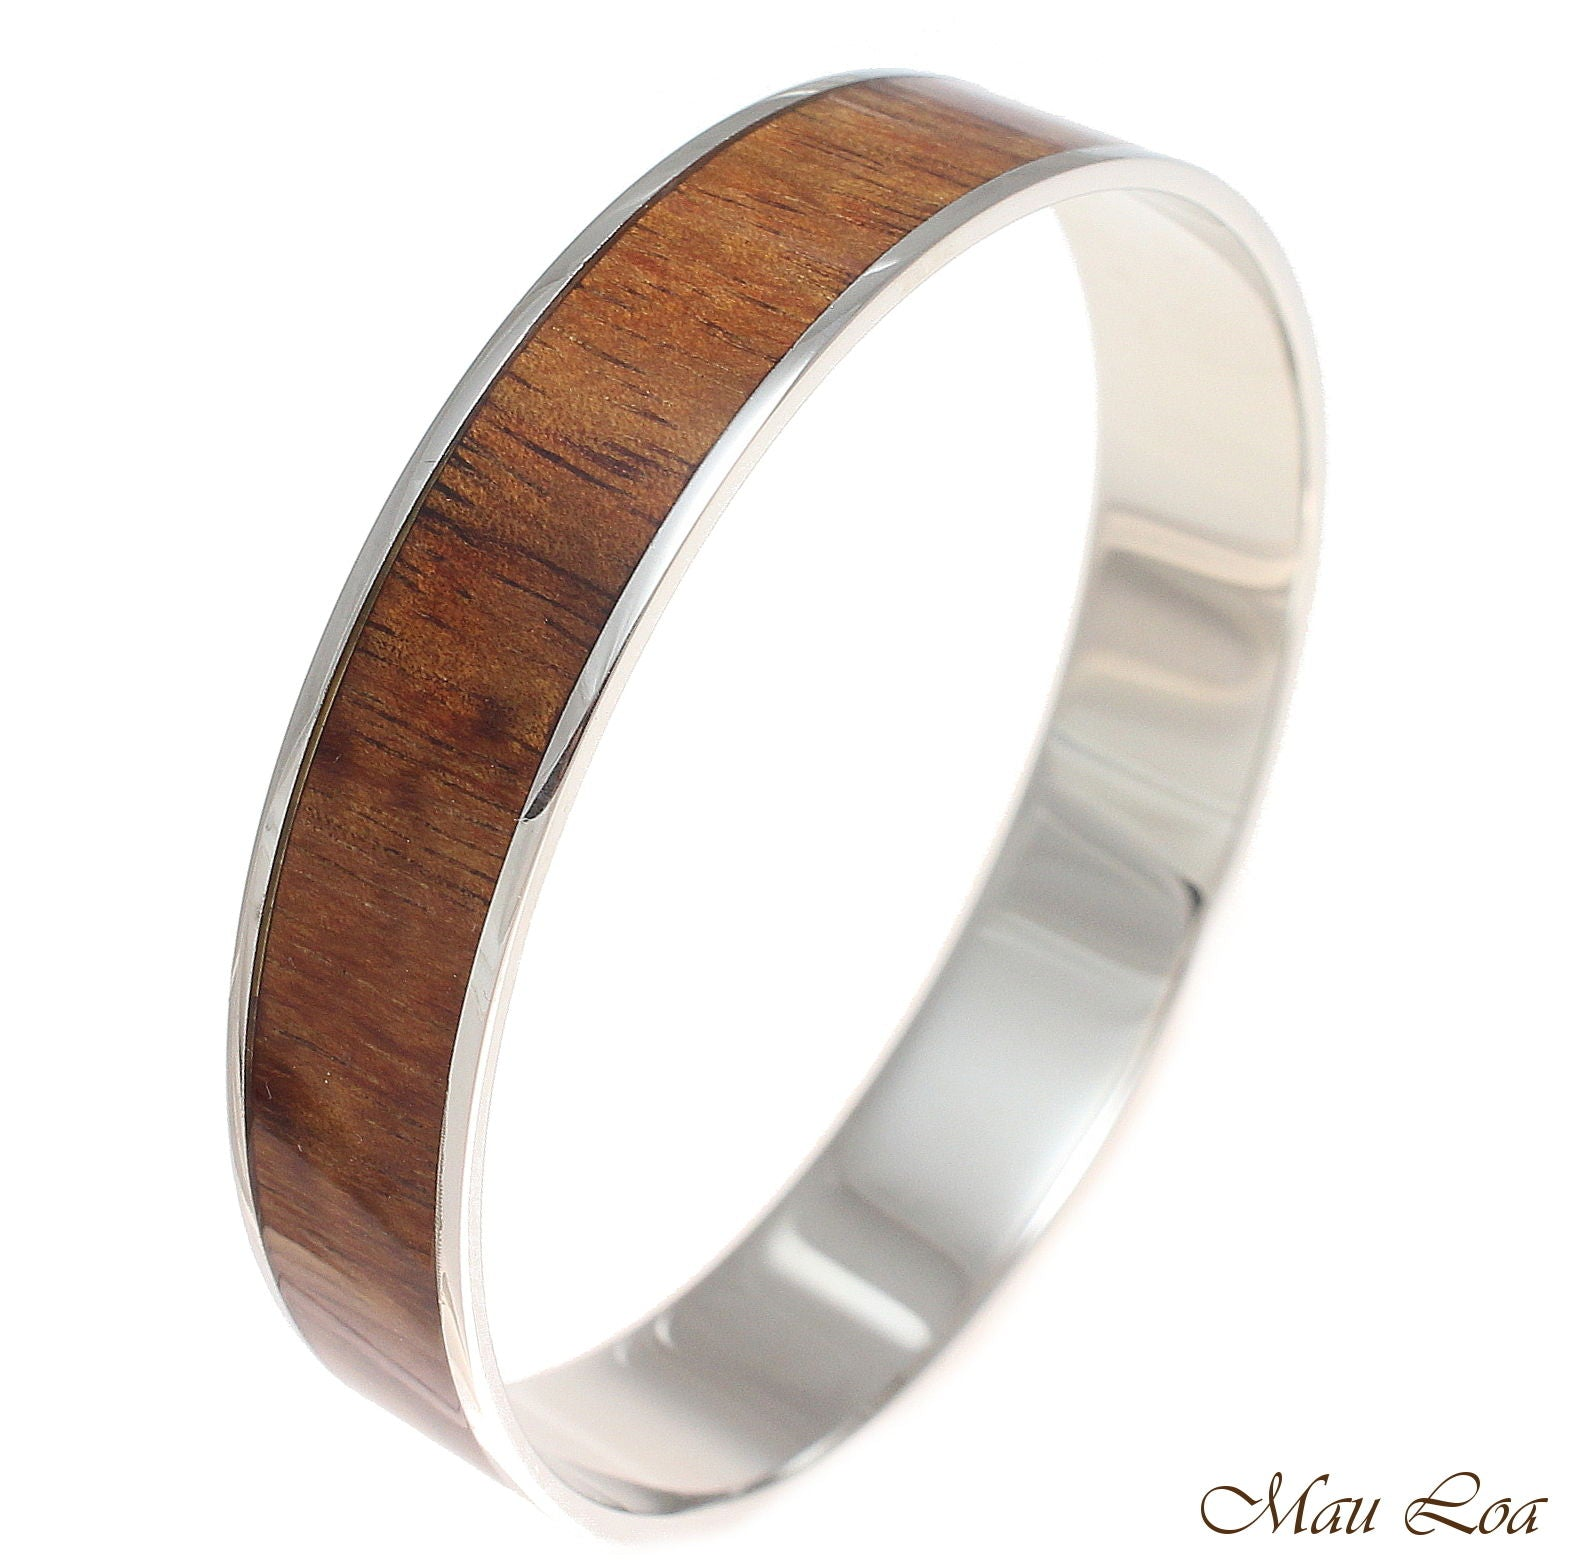 12mm Hawaiian Koa Wood Rhodium Plated on Brass Bangle Bracelet Size 7 - 9